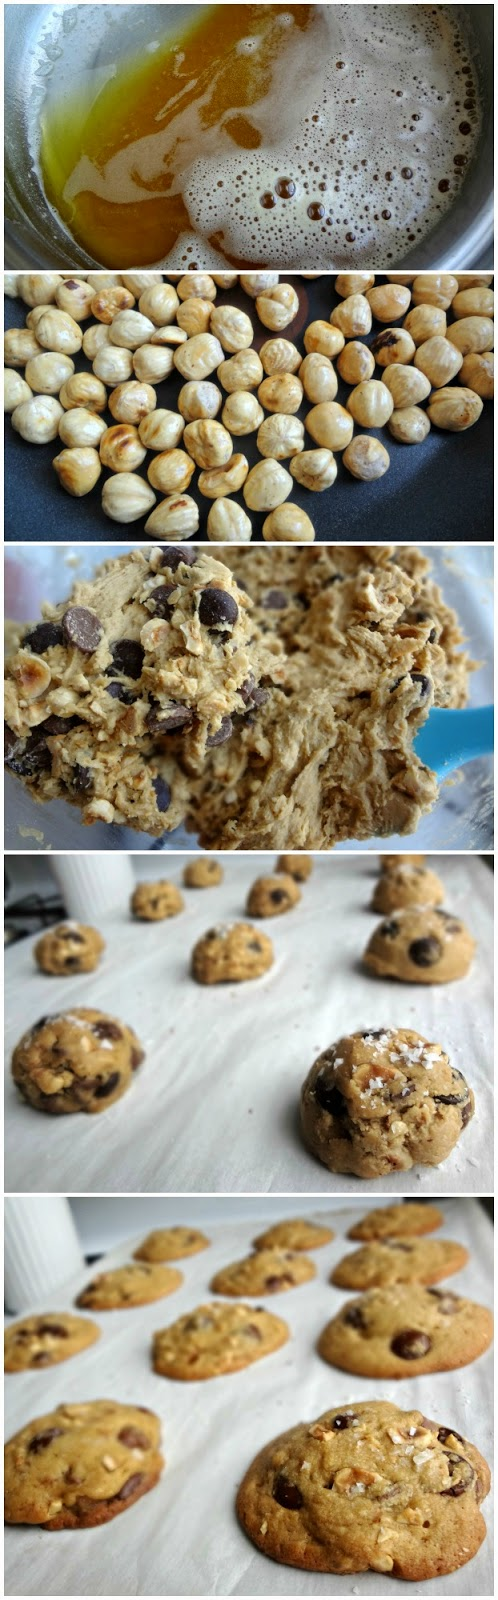 The Cooking Actress: Hazelnut Brown Butter Chocolate Chip Cookies